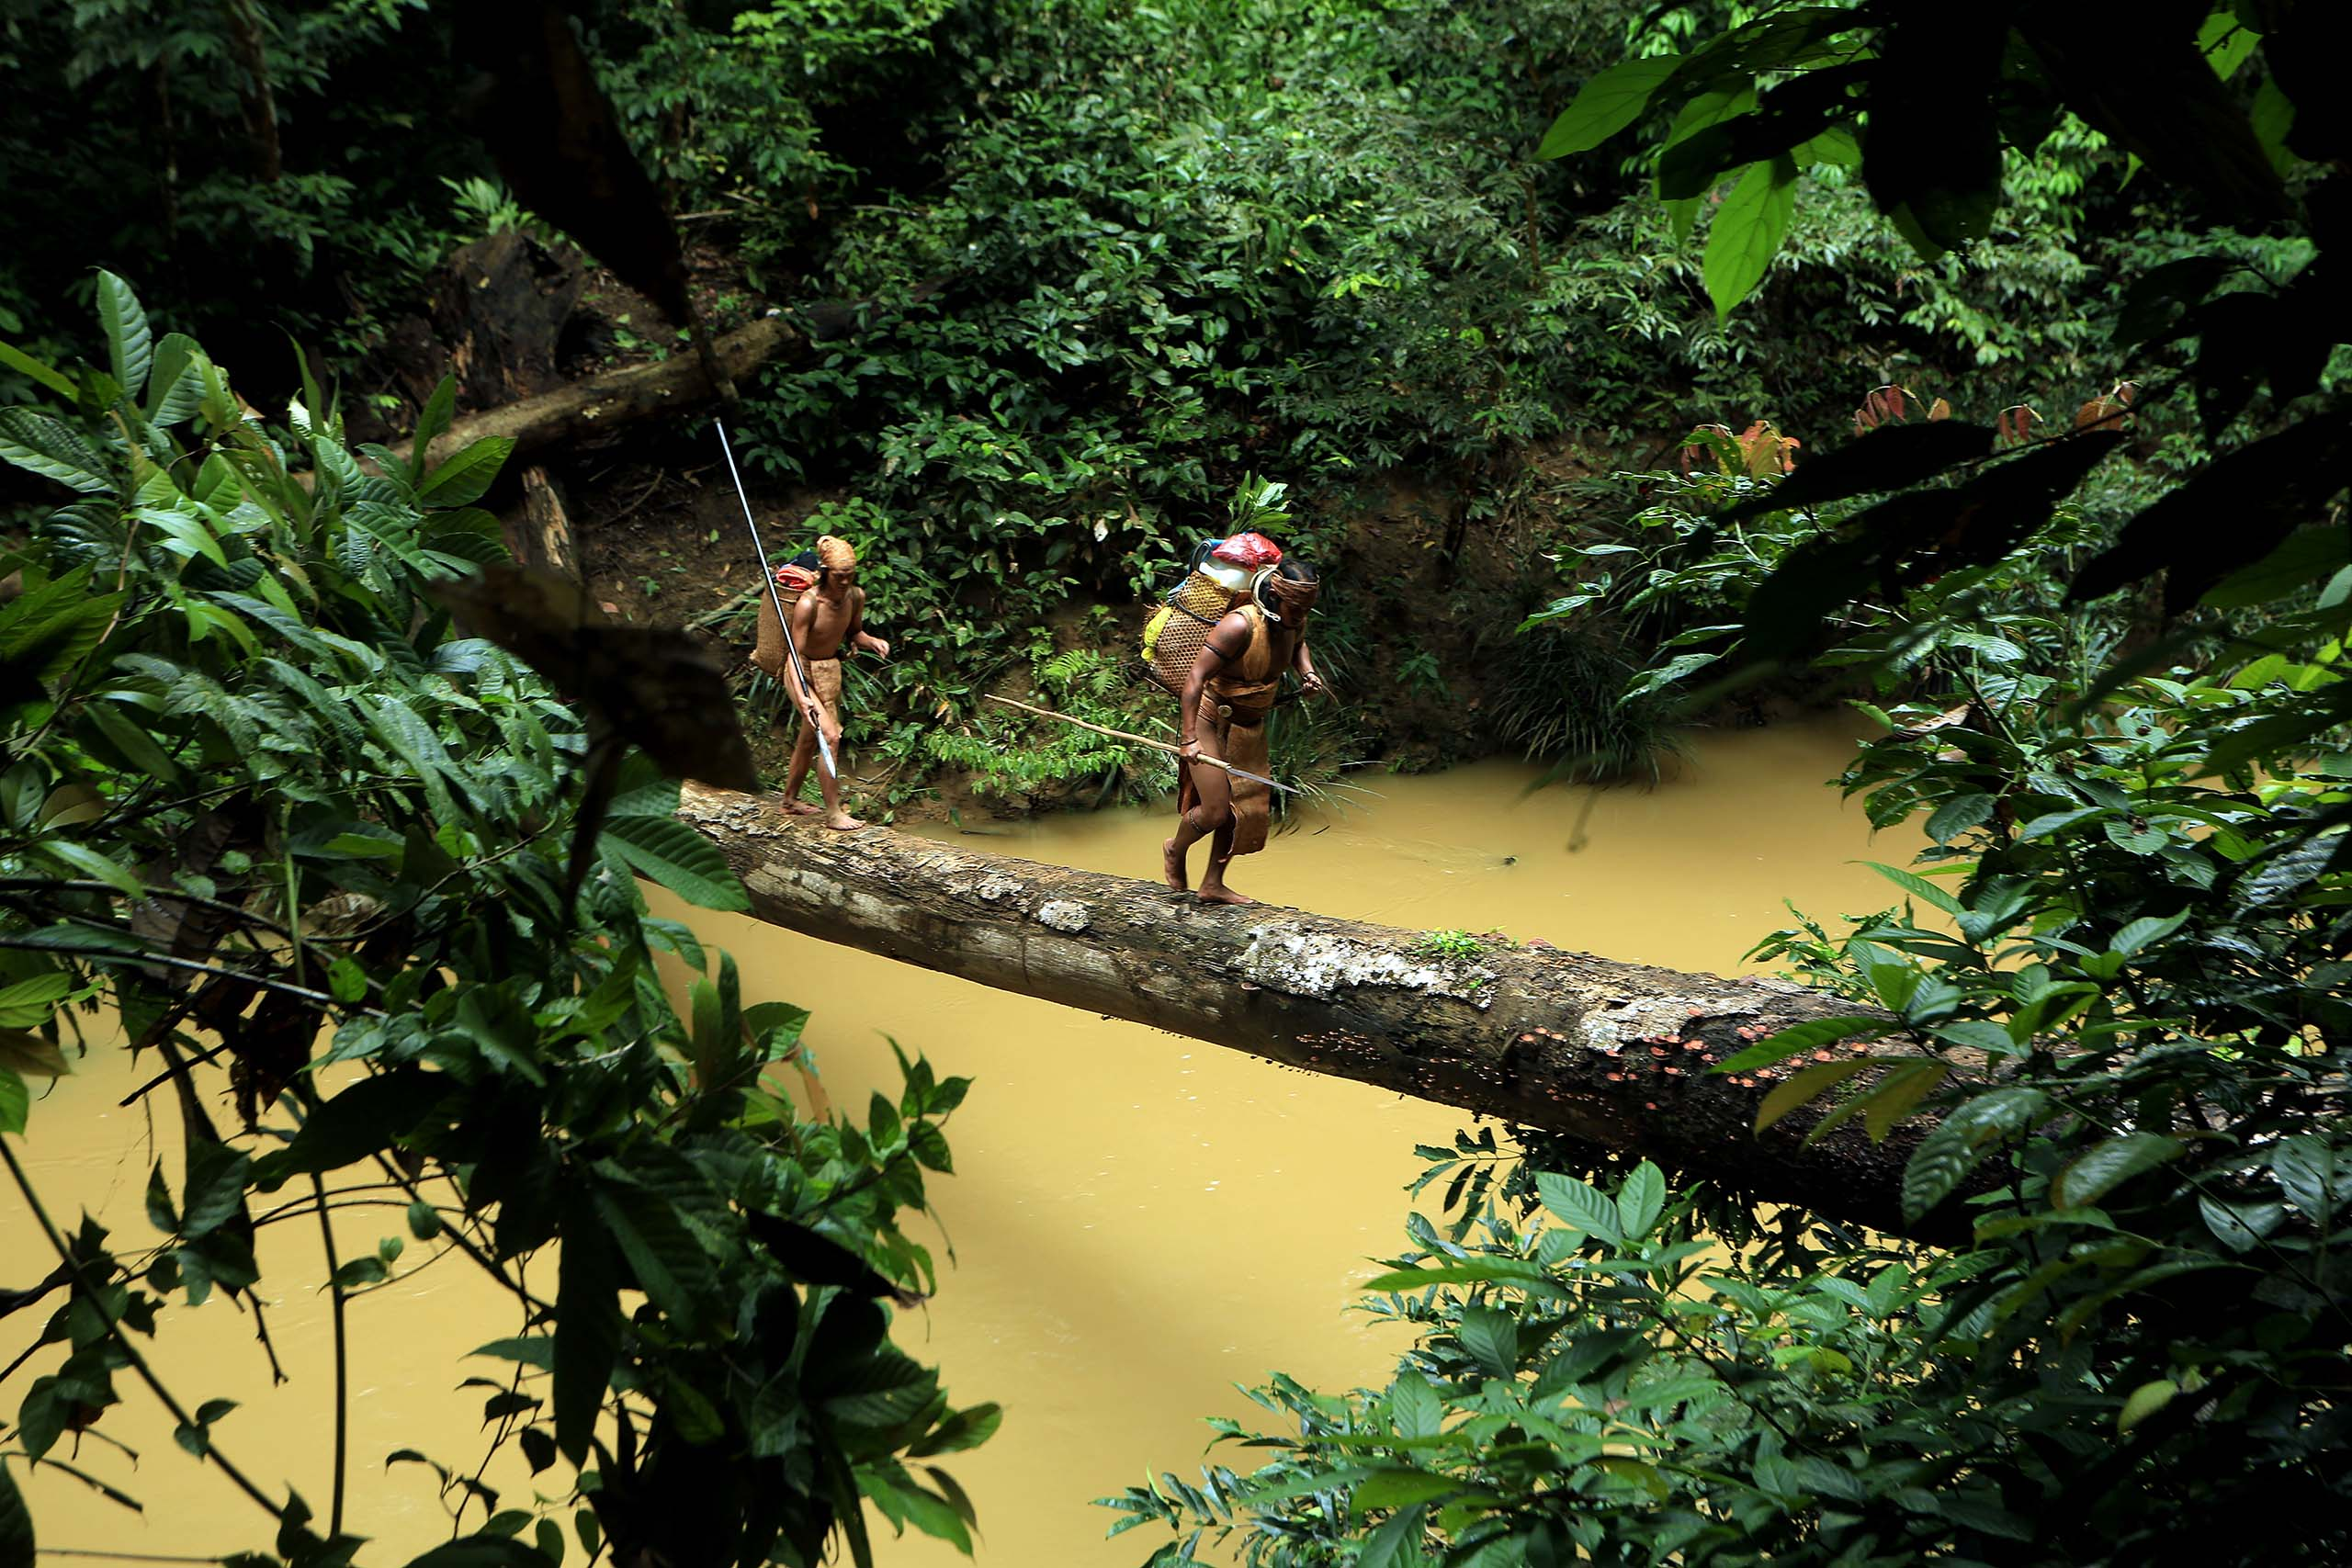 Mandara dayak jungle éco-tourisme indonésie